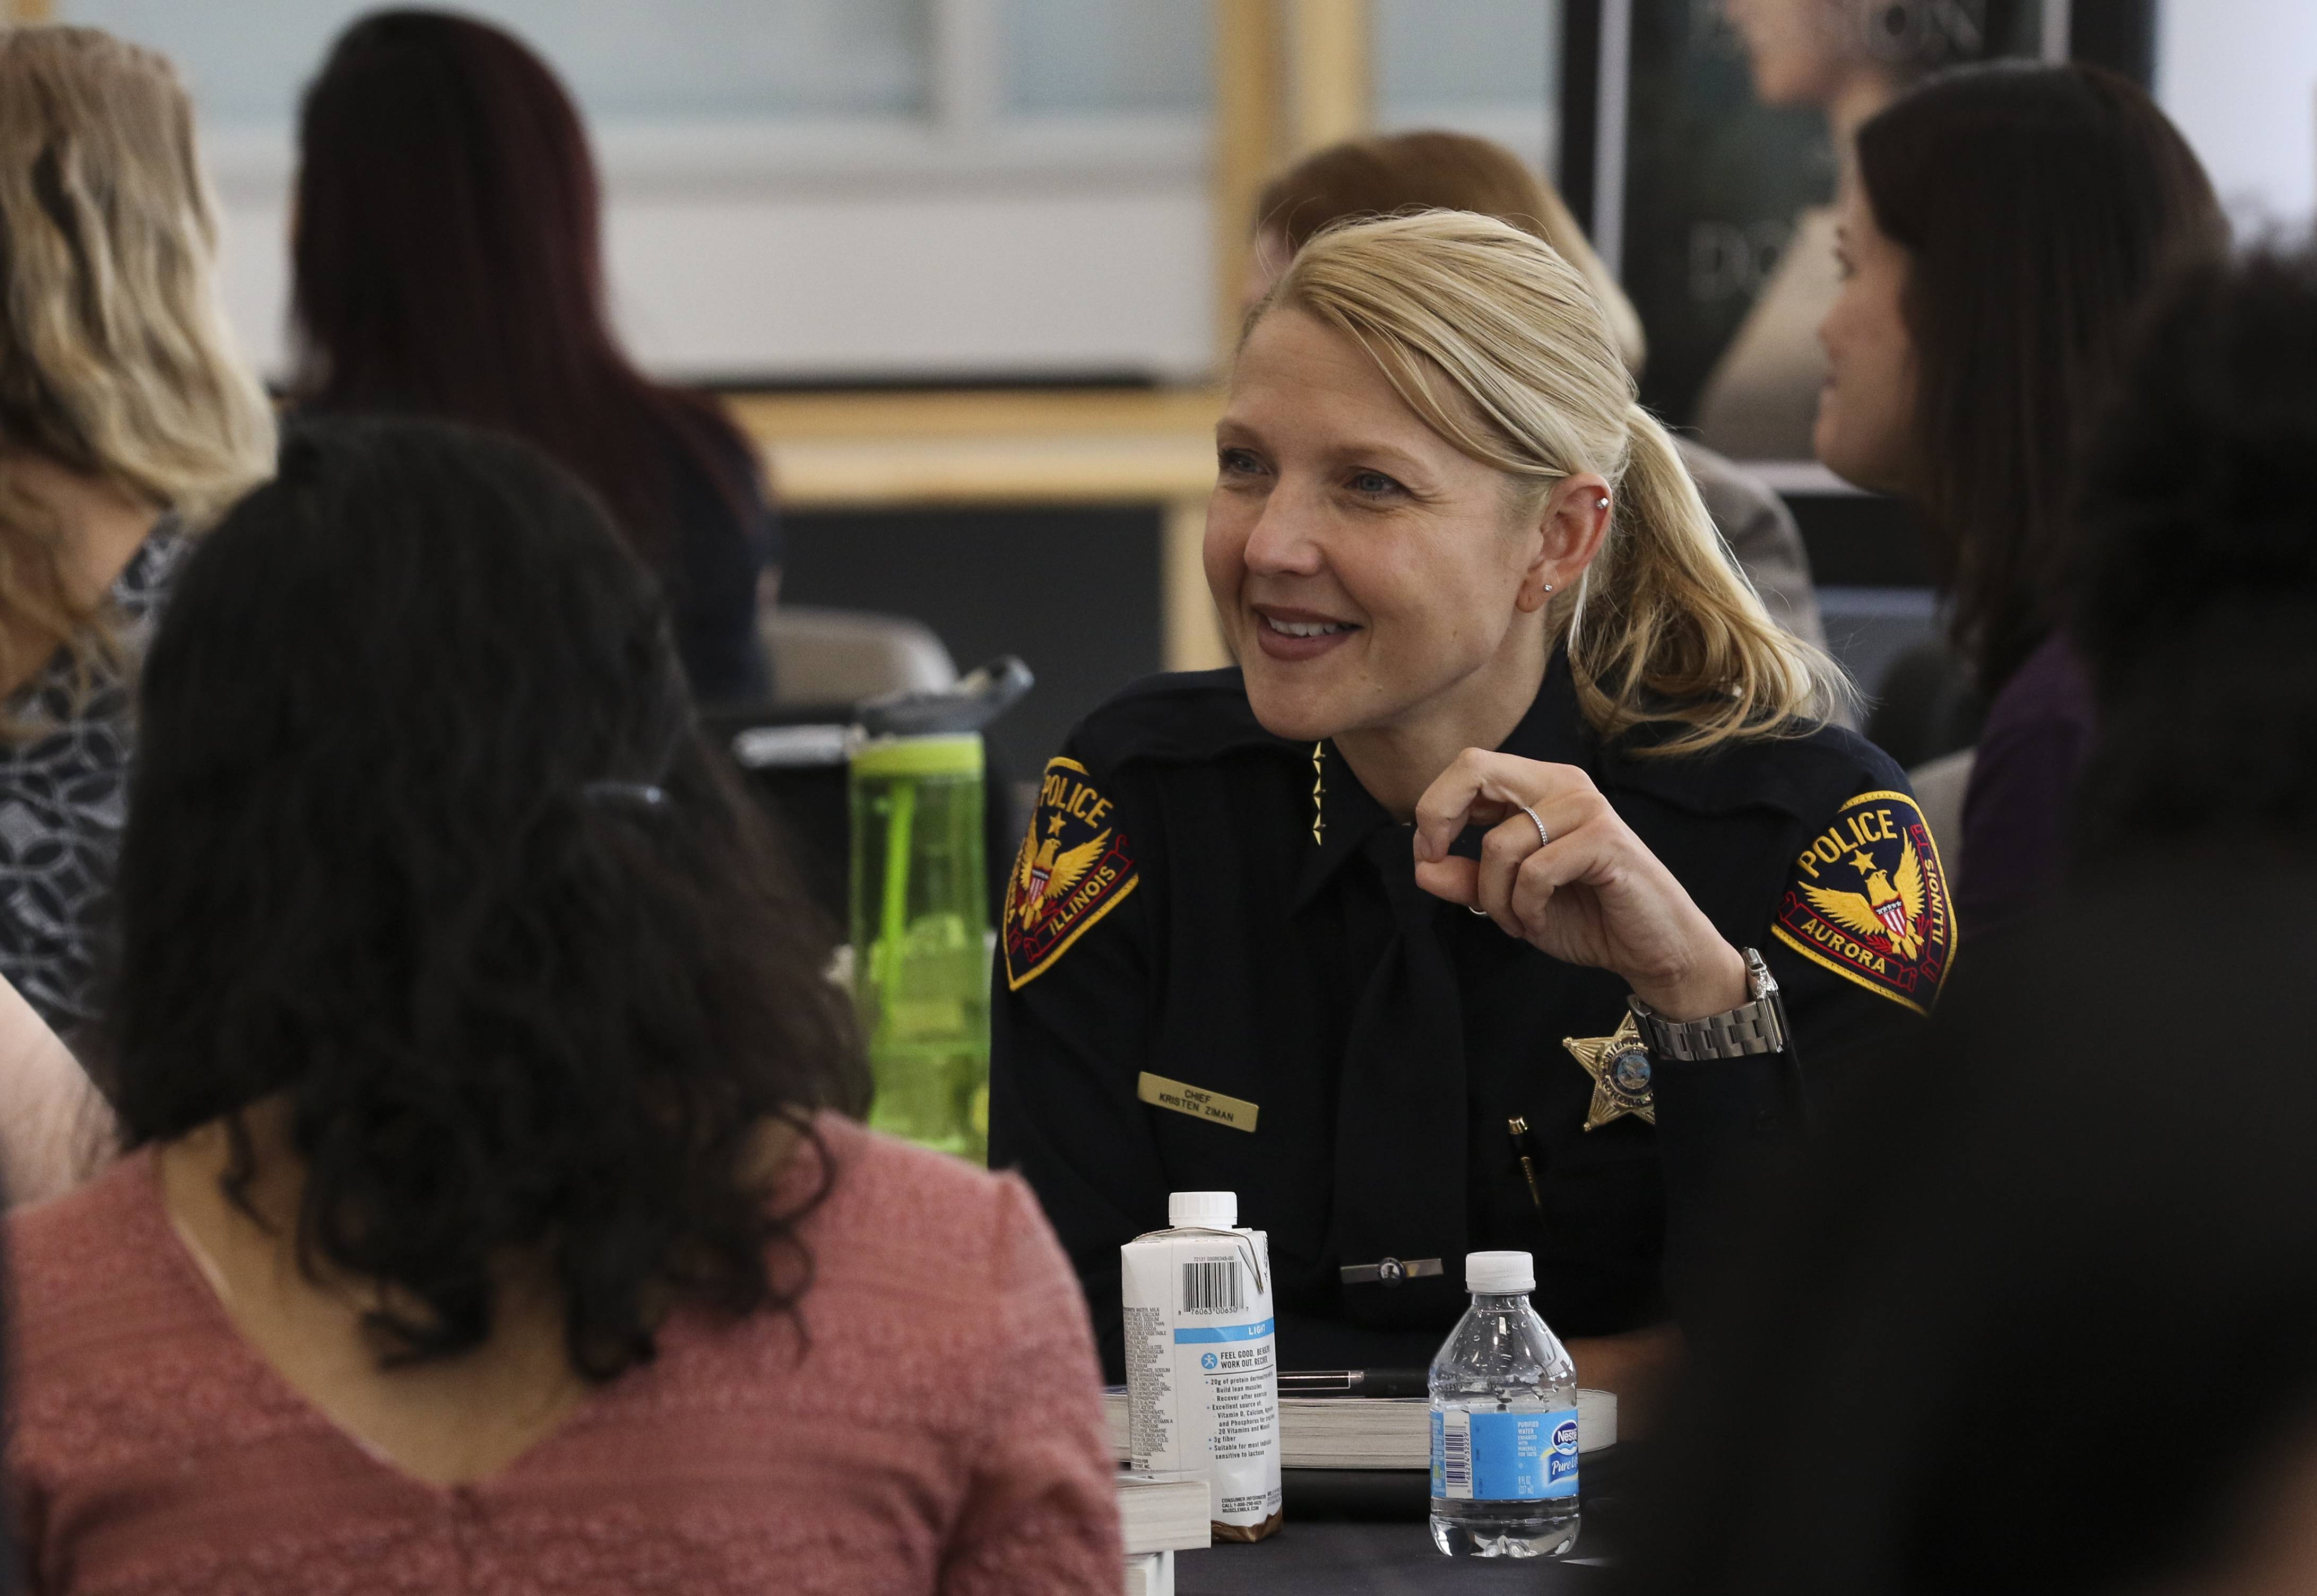 Aurora police Chief Kristen Ziman connects with students at Metea Valley High School in Aurora, where she appeared as one of four featured speakers during the school's second annual Women's History Month Workshop.